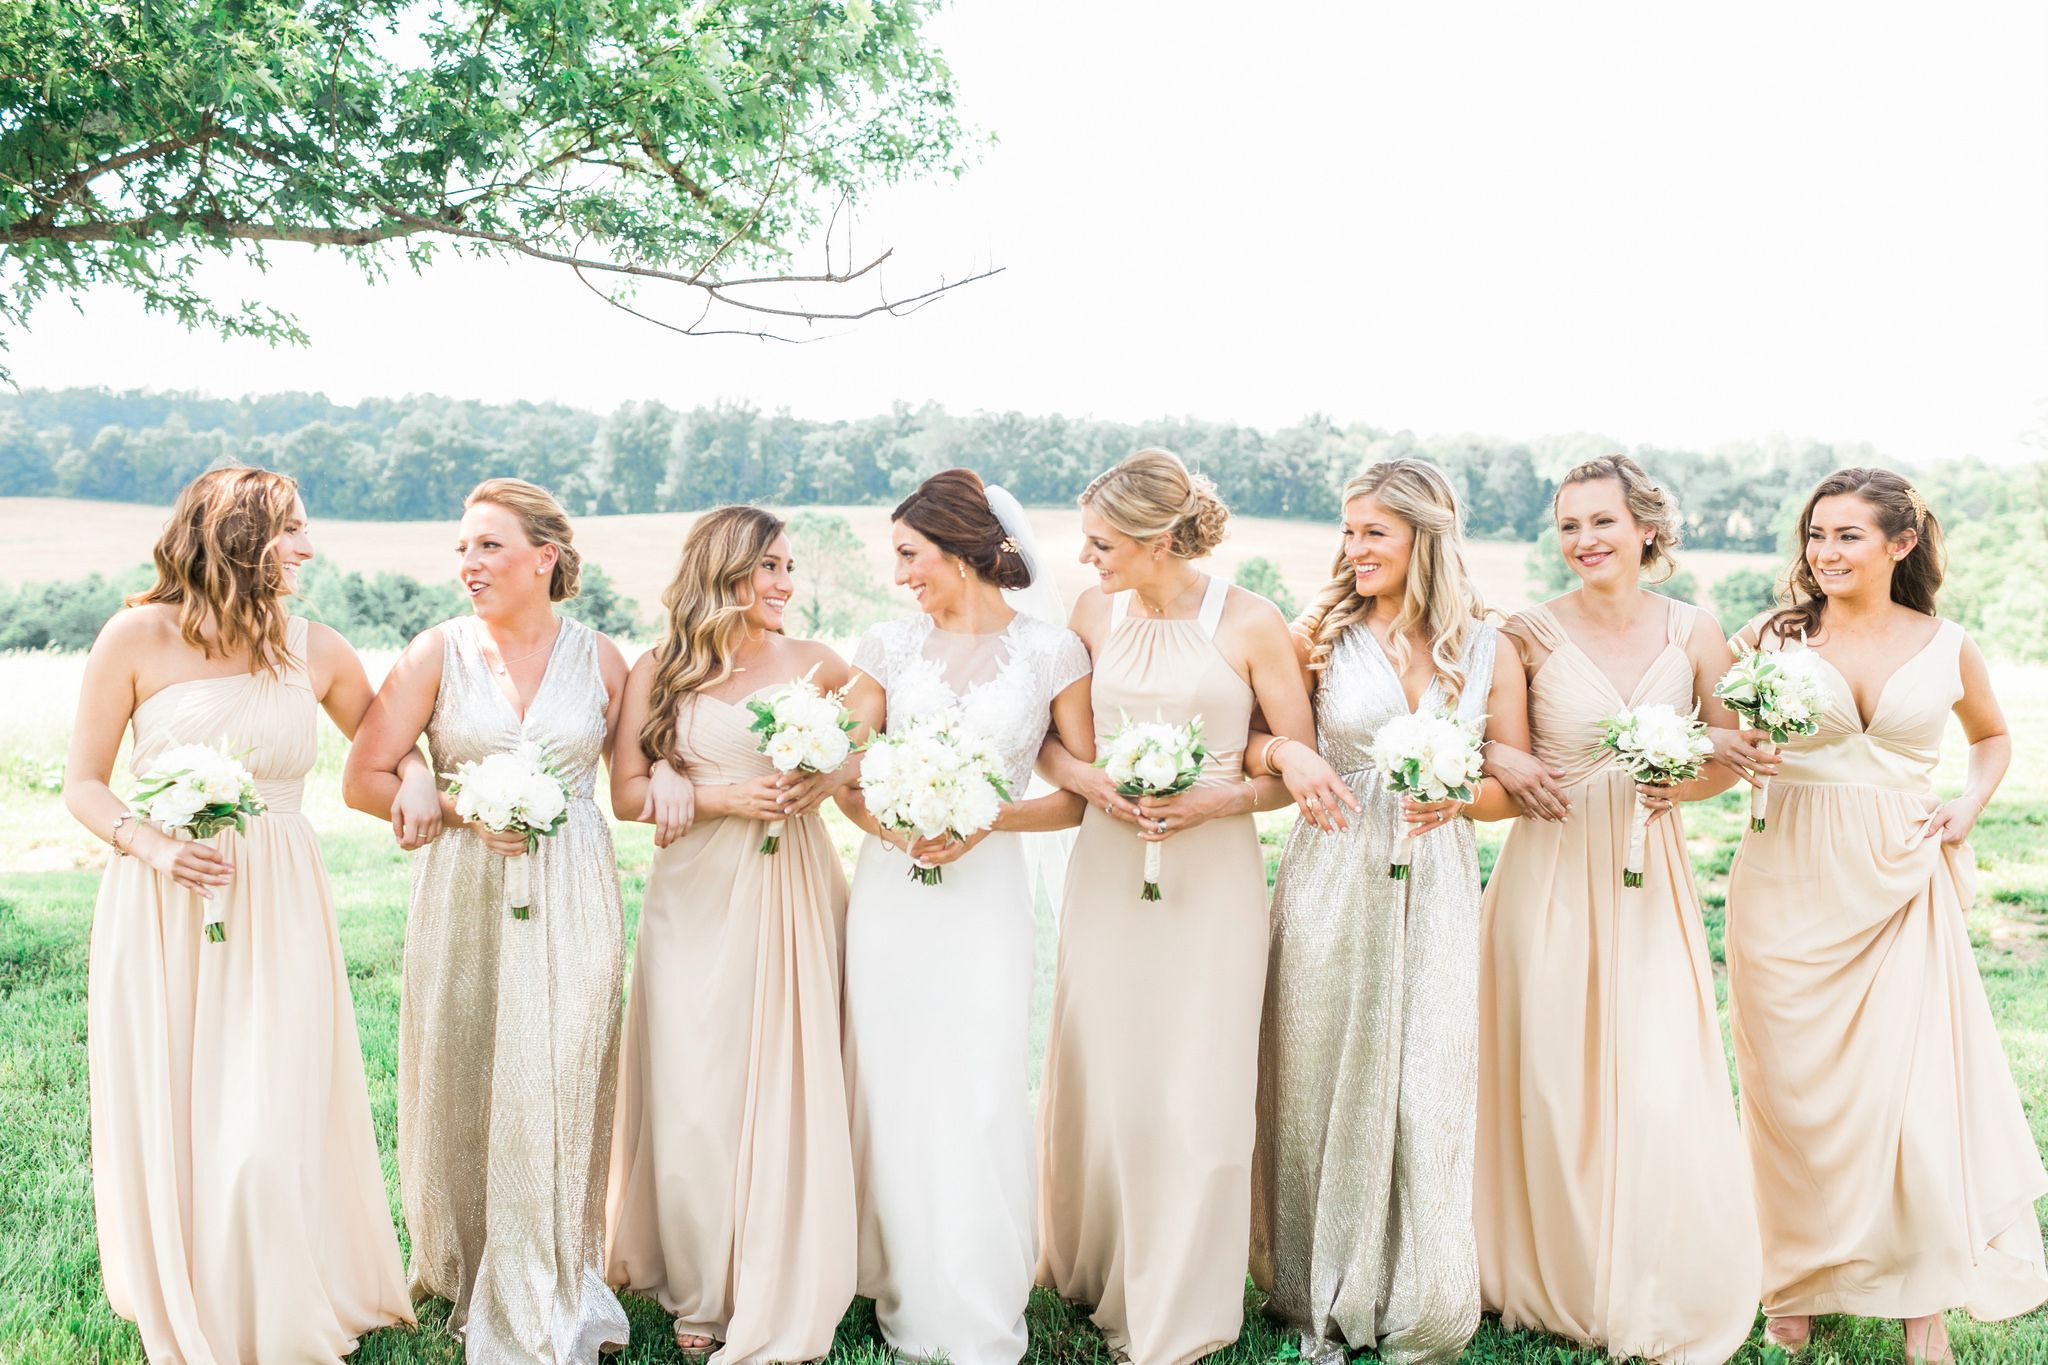 818afa5ad9 Shop Azazie Bridesmaid Dress - Kaitlynn in Chiffon. Find the perfect  made-to-order bridesmaid dresses for your bridal party in your favorite  color